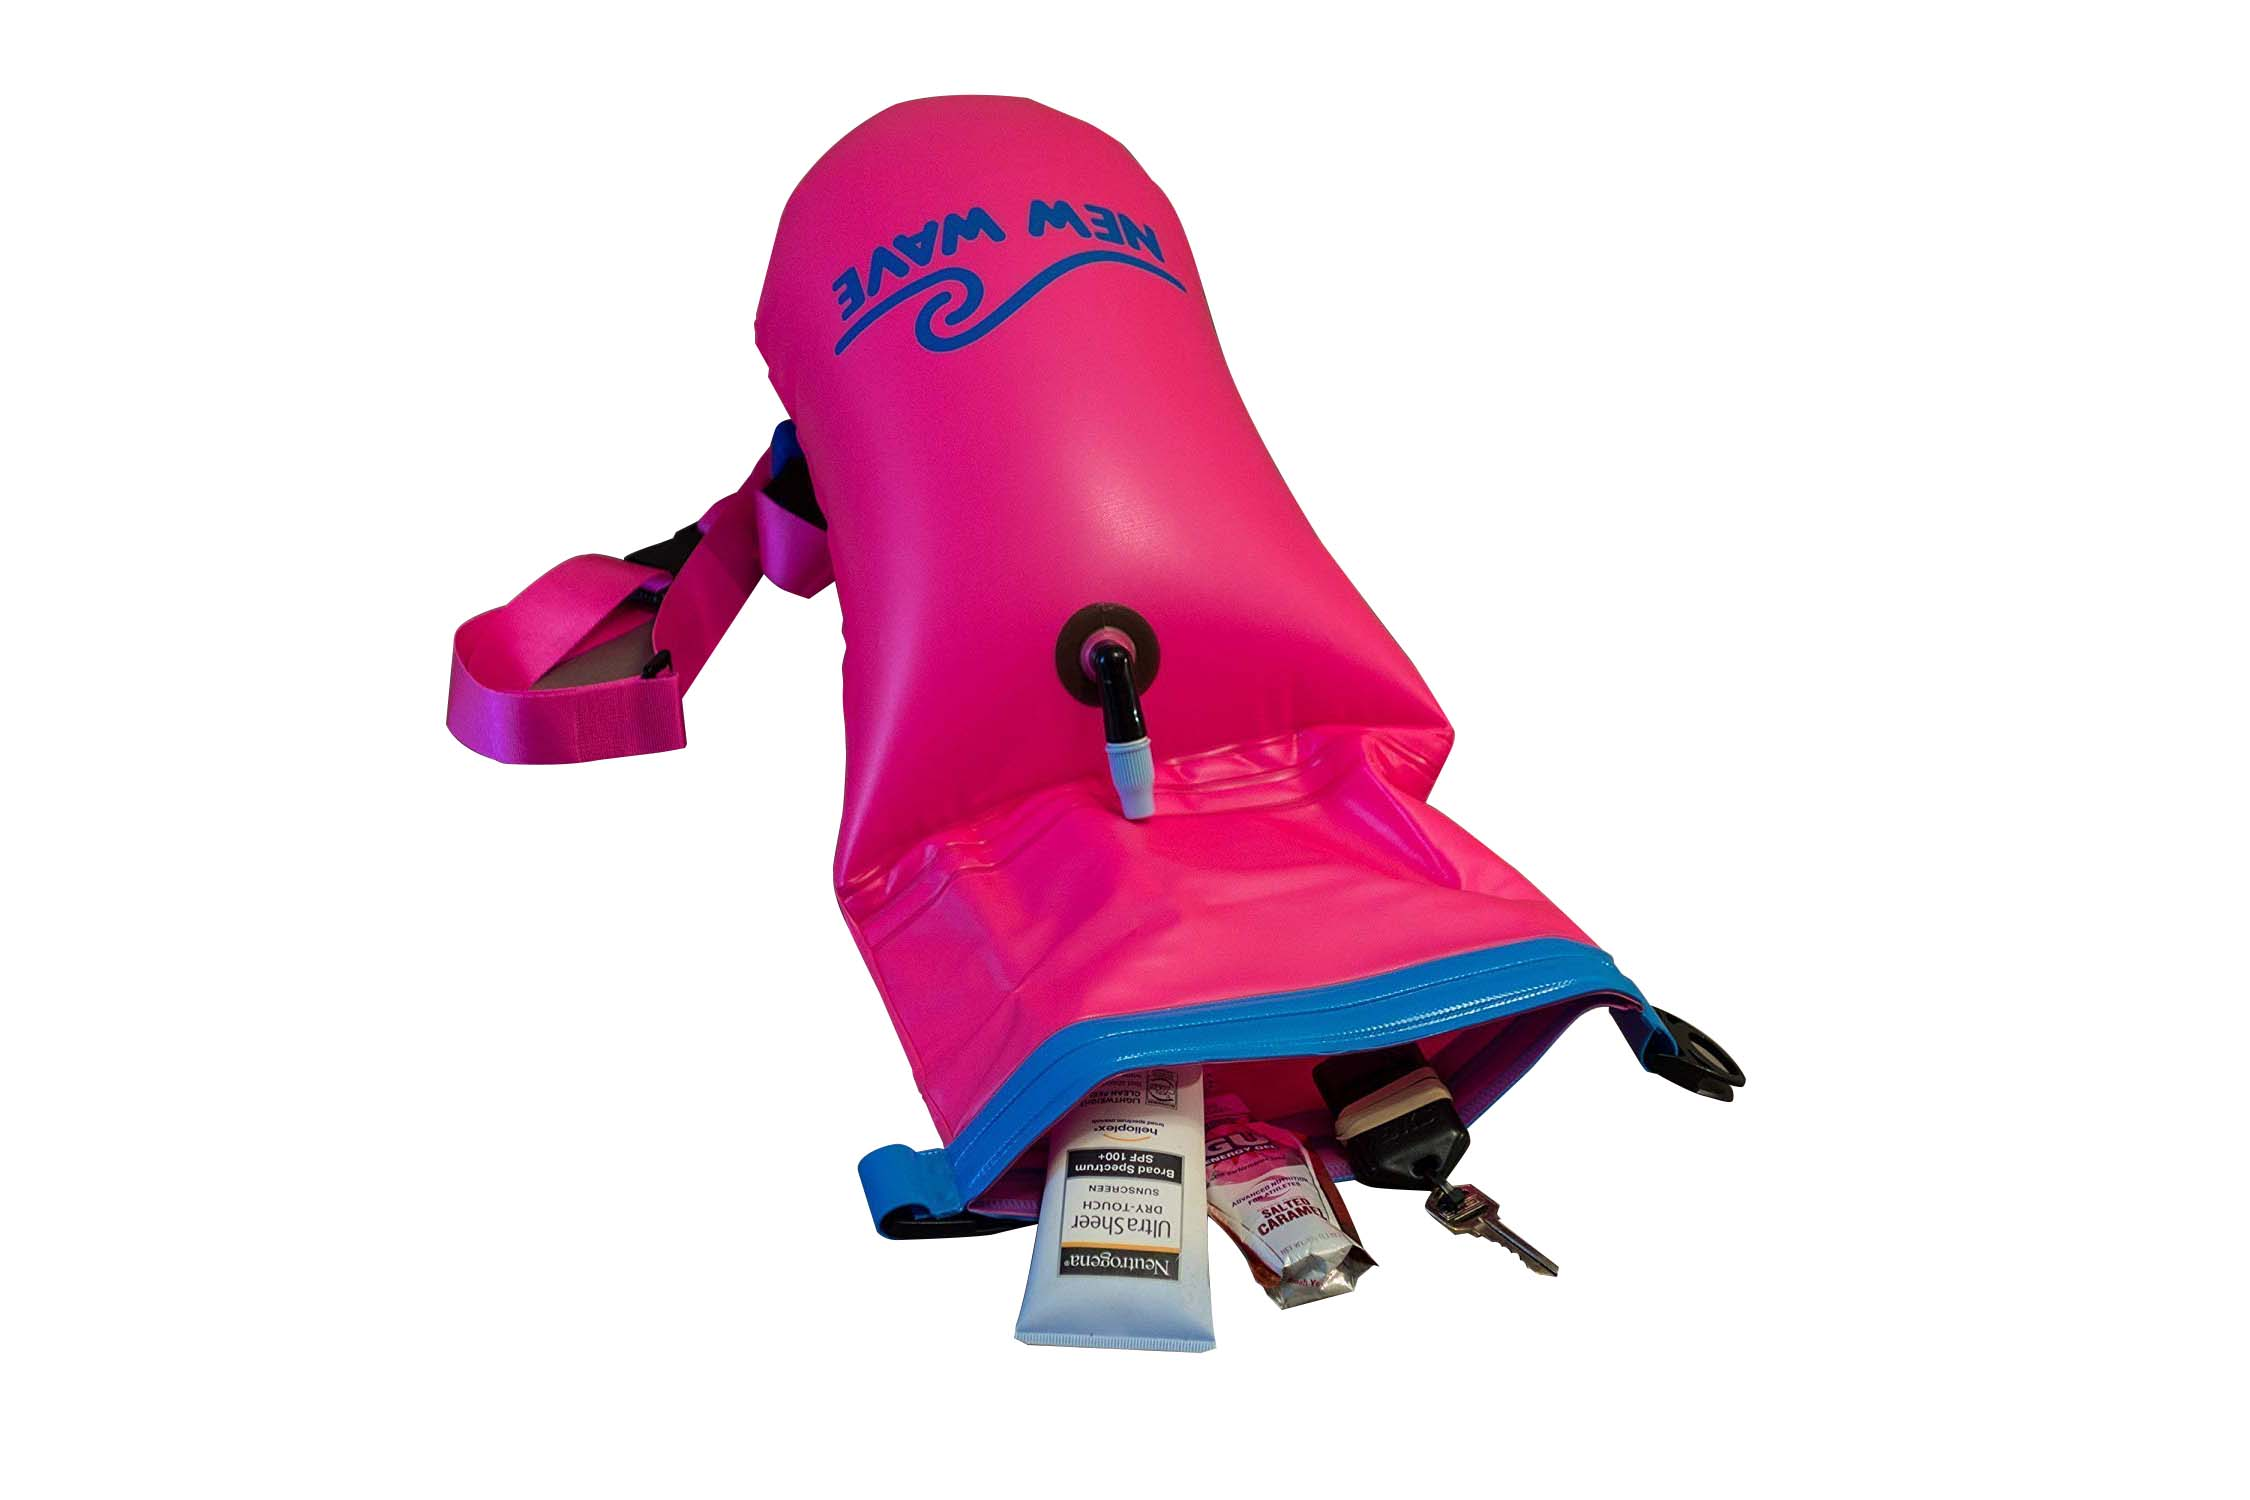 floating dry pack with adjustable shoulder strap open water swim buoy flotation device-6